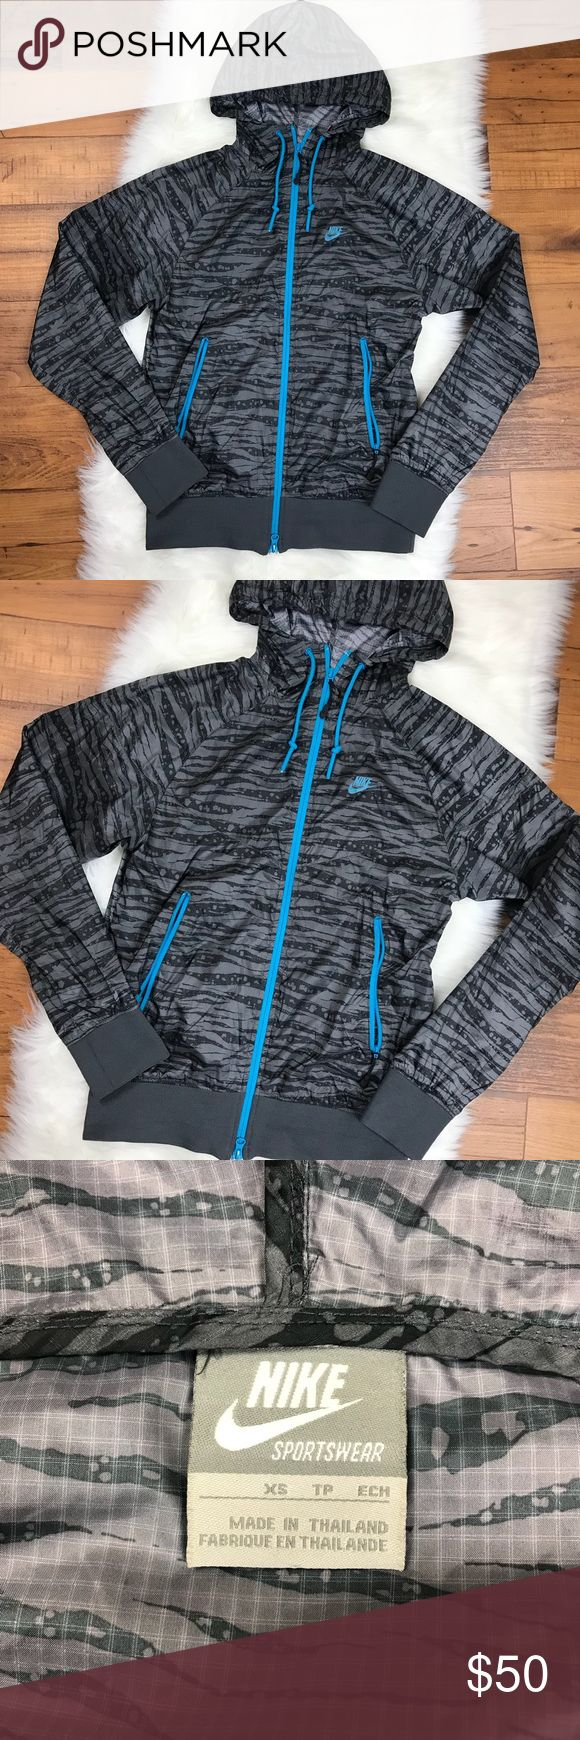 """Nike Windrunner Tiger Striped Lightweight Zip Up Nike Windrunner Tiger Striped Lightweight Windbreaker Zip Up. Very thin/lightweight. Gray/black tiger striped with blue trim details. Size XS. Armpit to armpit is about 17"""". Armpit to end of sleeve is about 21"""". The length of the jacket is about 24.5"""". Nike Jackets & Coats Windbreakers"""